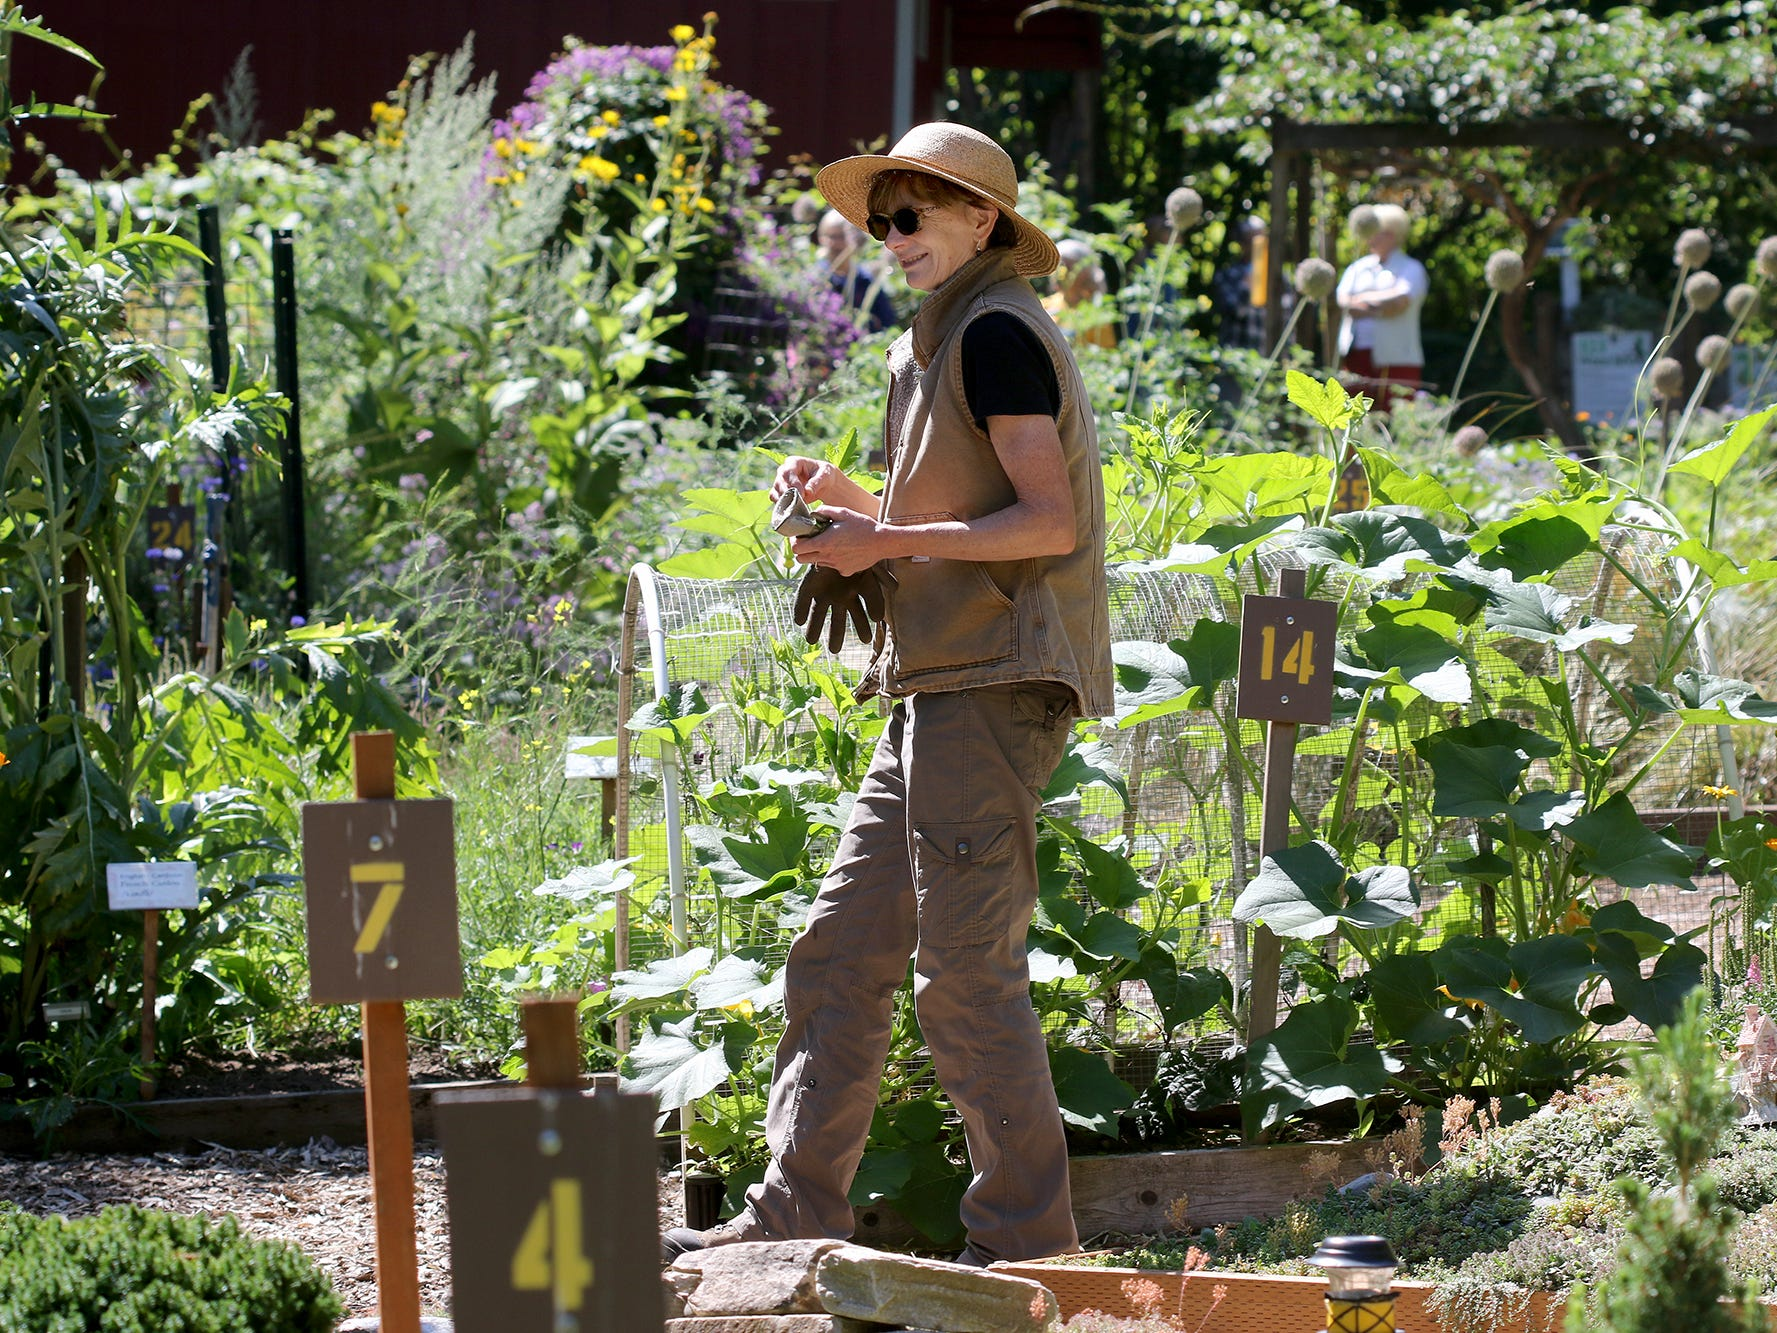 Linda Treflinger, of the WSU Master Gardener Program, works in the garden at the Anna Smith Garden.